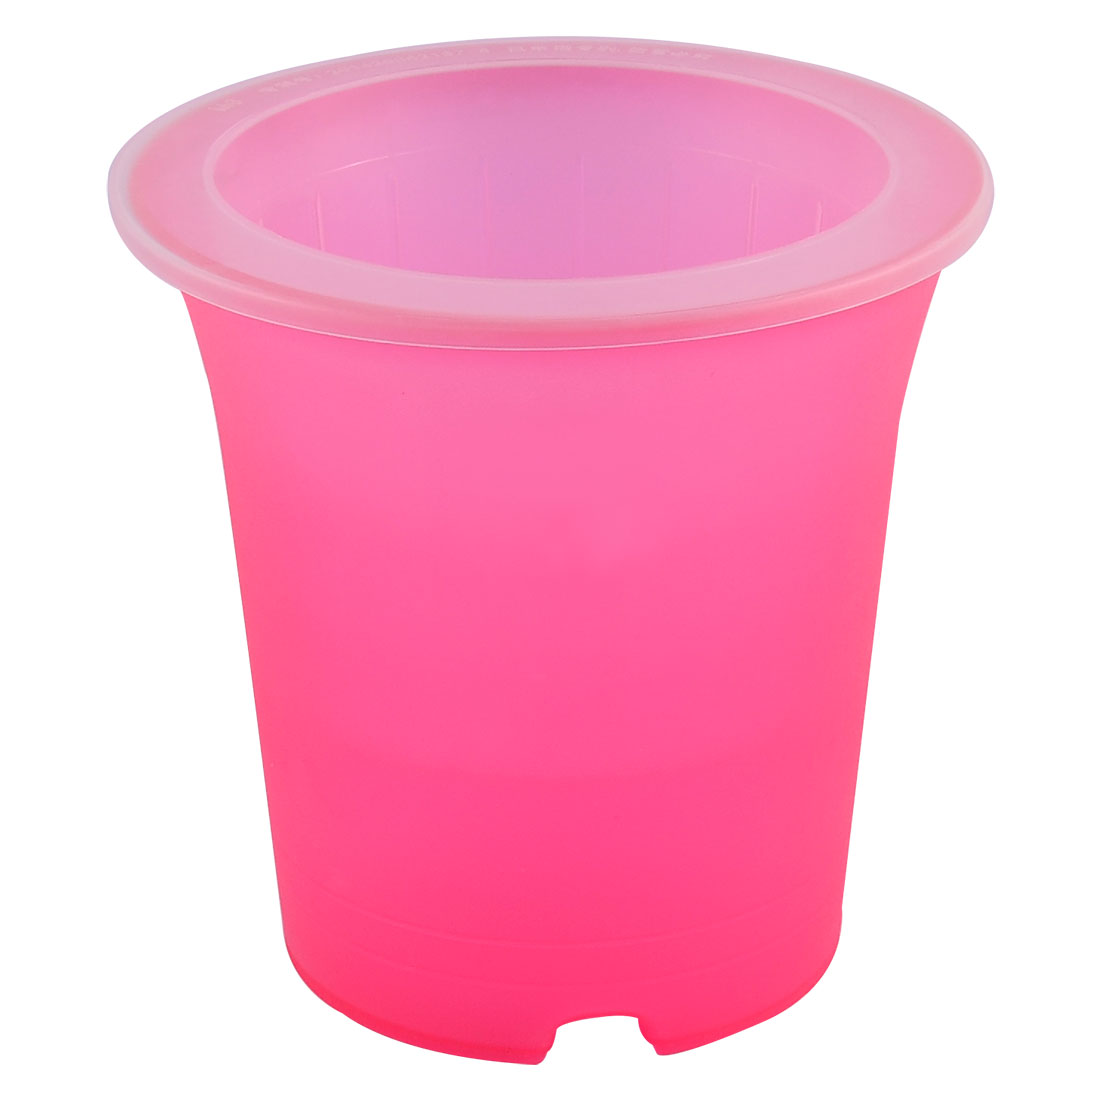 Plastic Double Layers Design Flower Pot Self Watering Planter Container Red